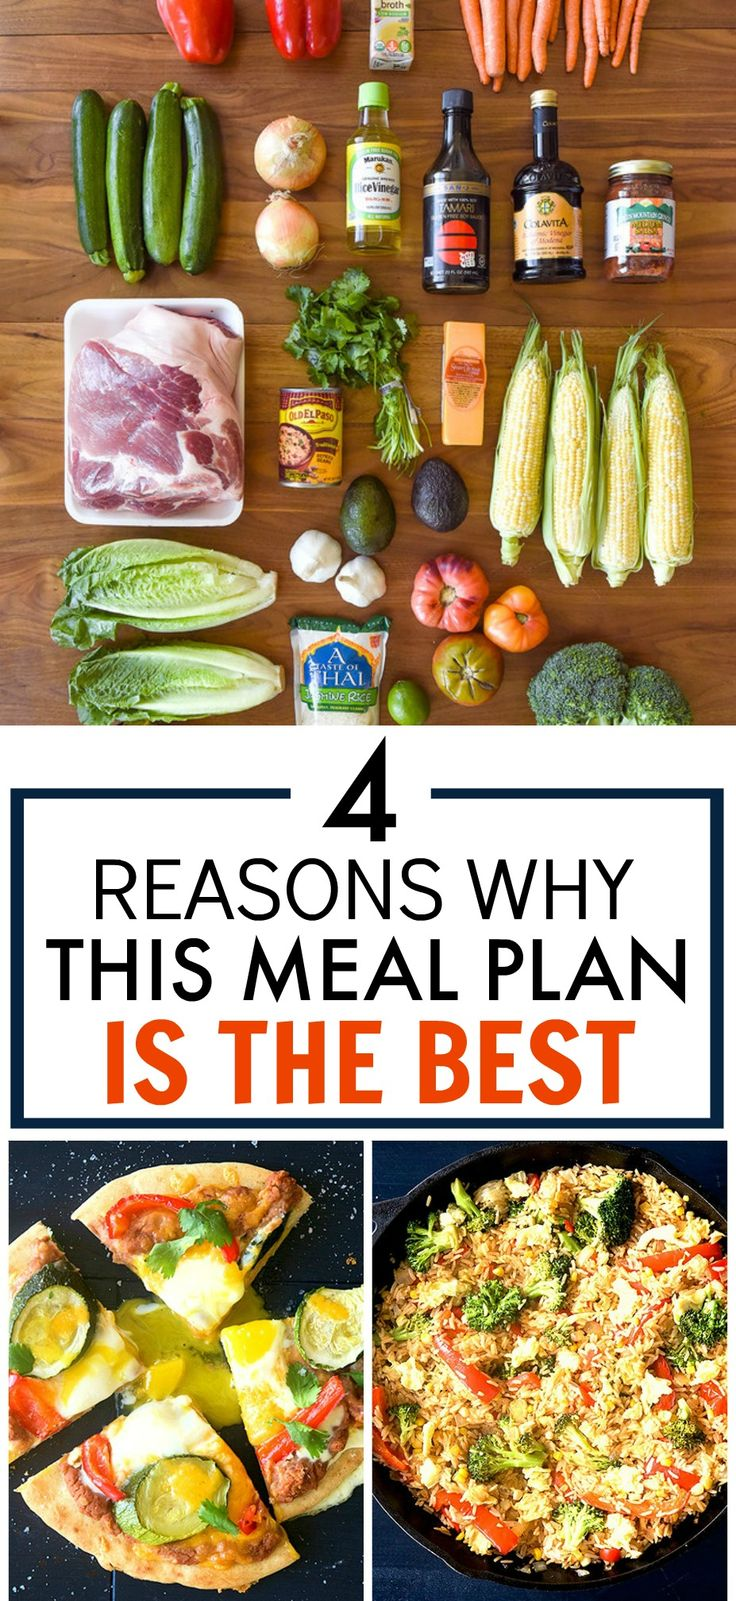 These 4 Reasons Why This Meal Plan is the Best is AWESOME! I'm so glad I found this! I've finally found a meal plan that's HEALTHY AND BUDGET FRIENDLY! Now I'll be spending less and eating better! Such a great money saving meal plan! Pinning for later!